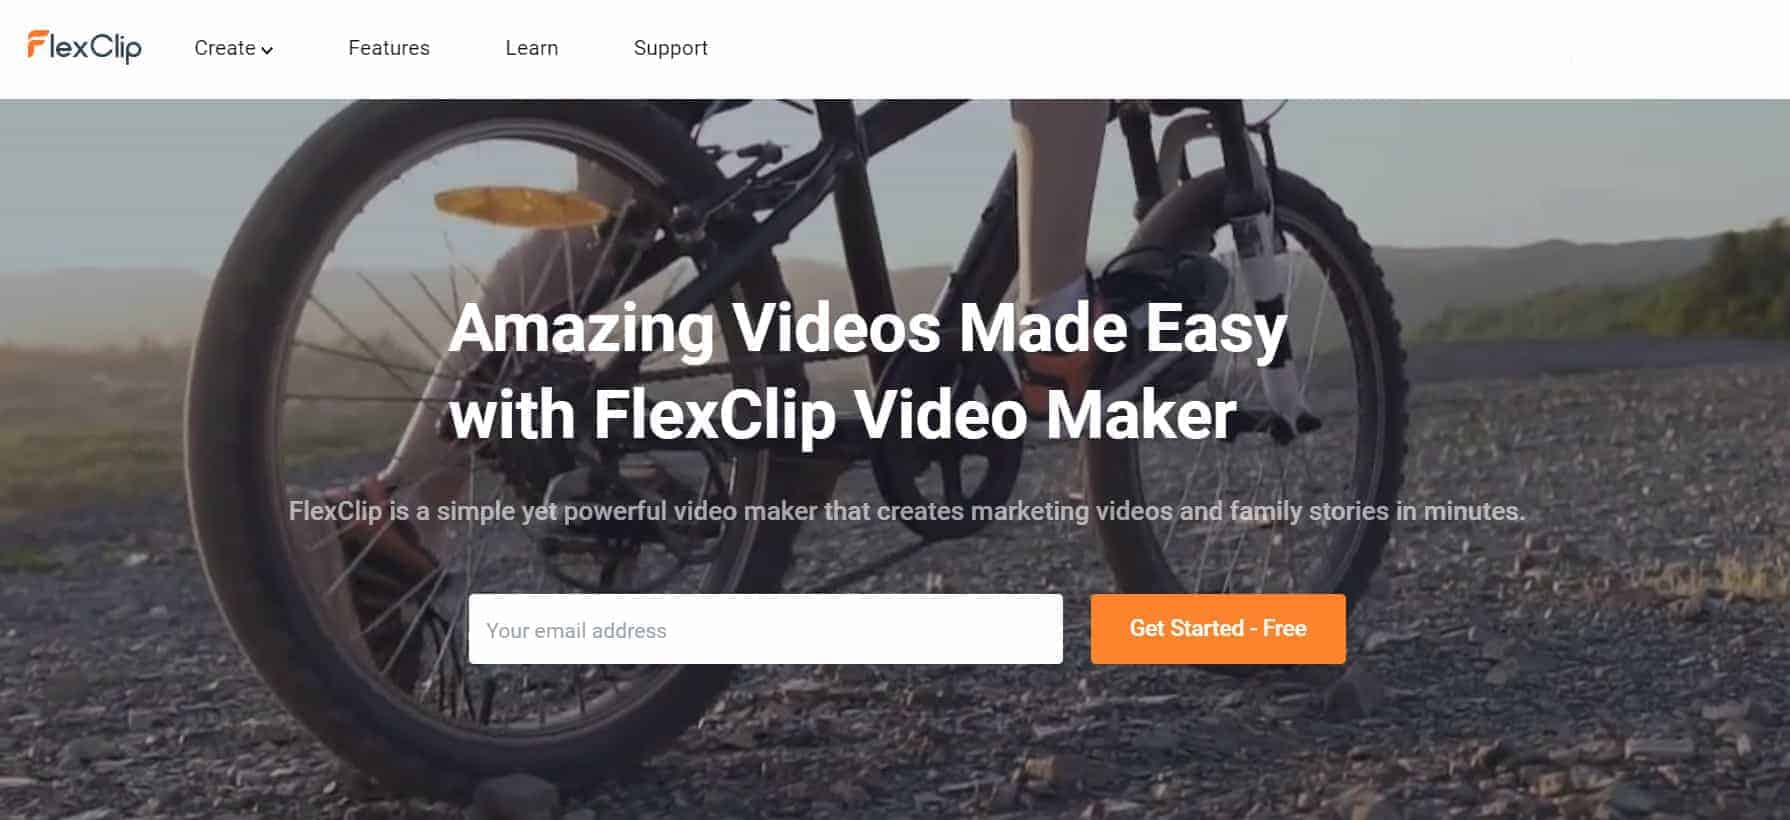 FlexClip Review - Video Creation Made Easy! - 3